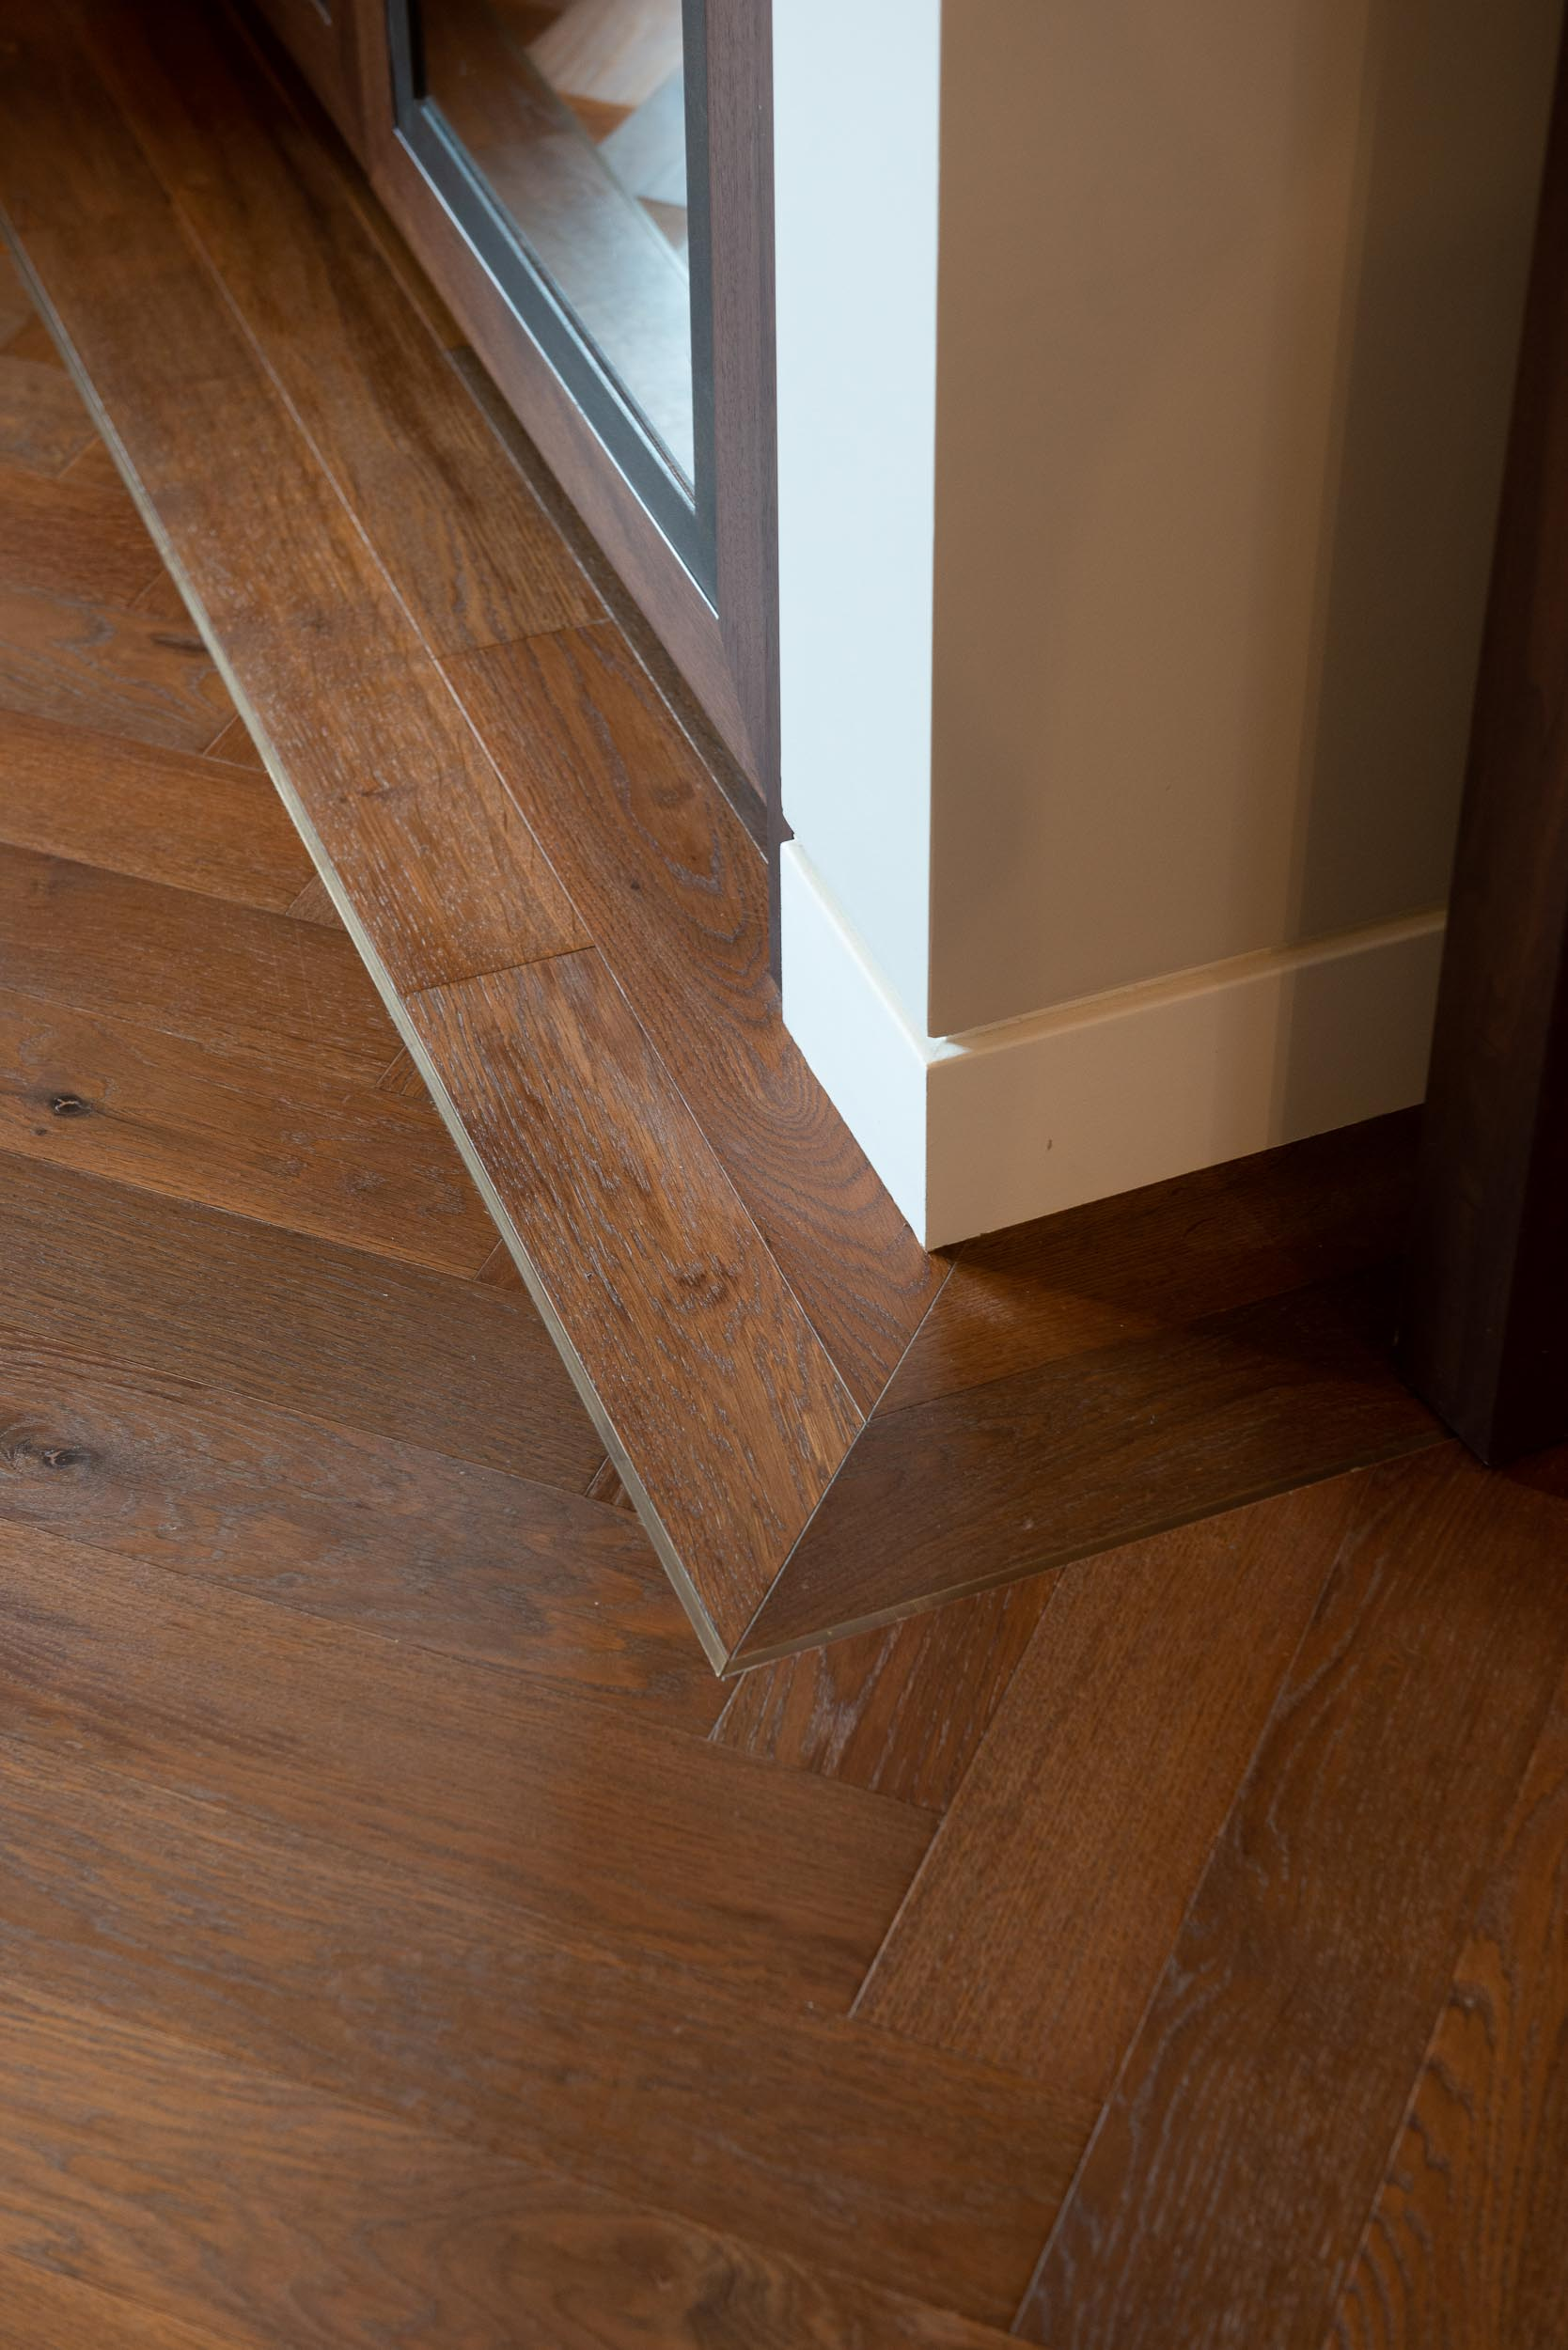 Medium Thermo Oak Oiled 2 line border with inset strip